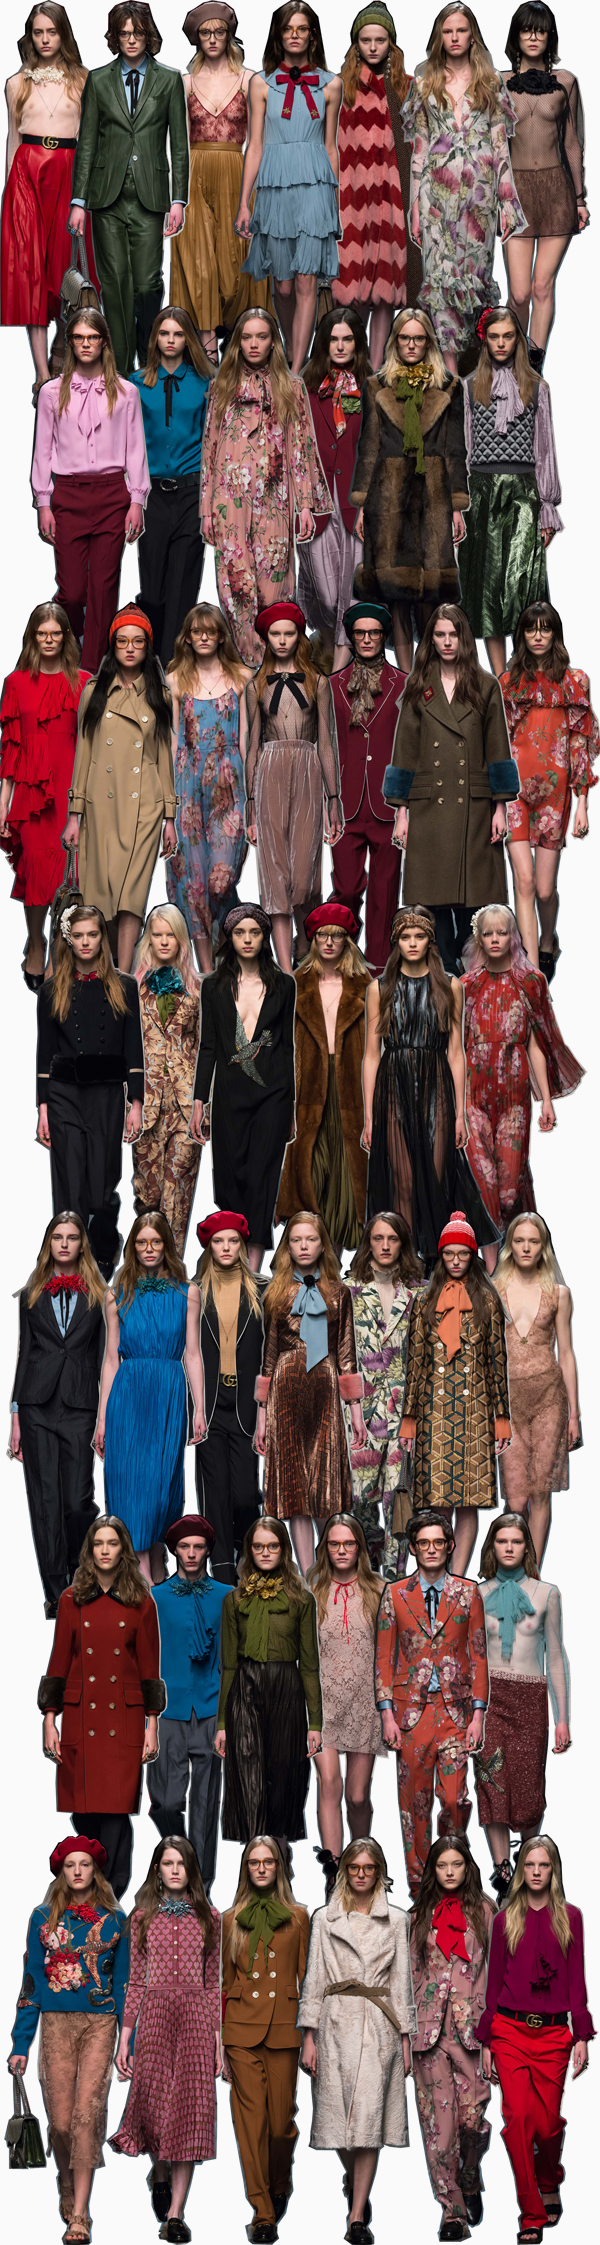 Gucci Fall 2015 fashion show